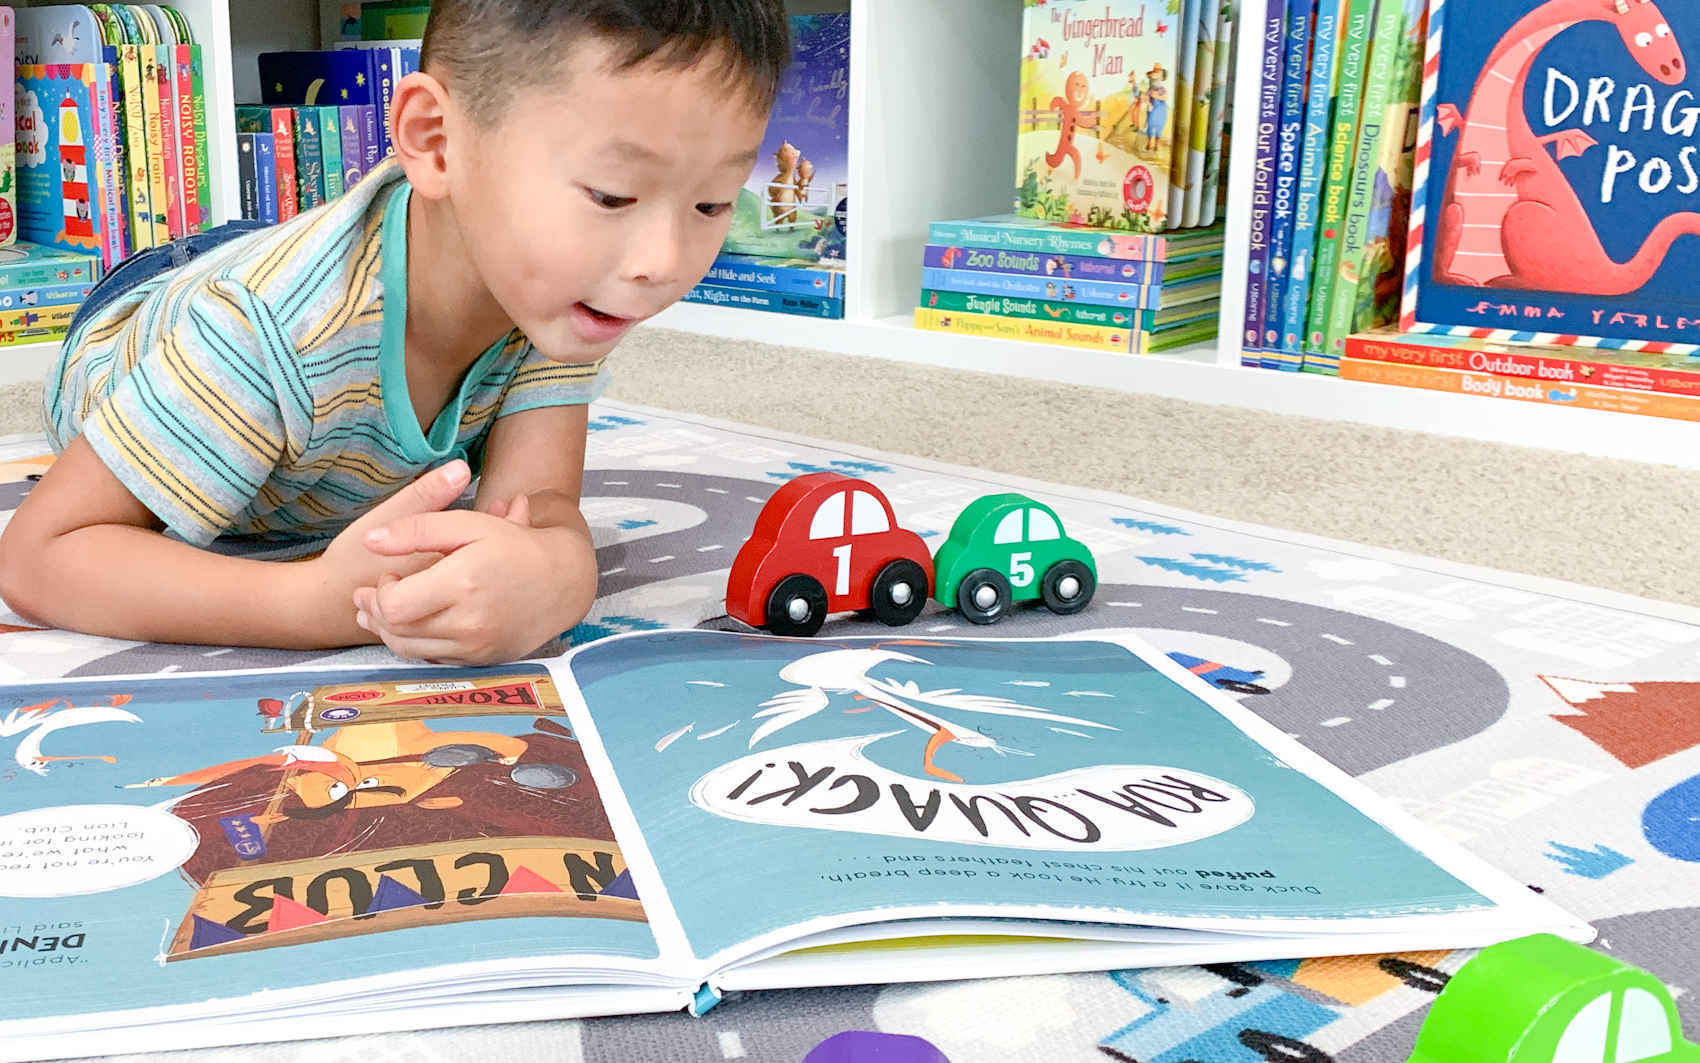 Deliver a brand-new book to a child in need. image